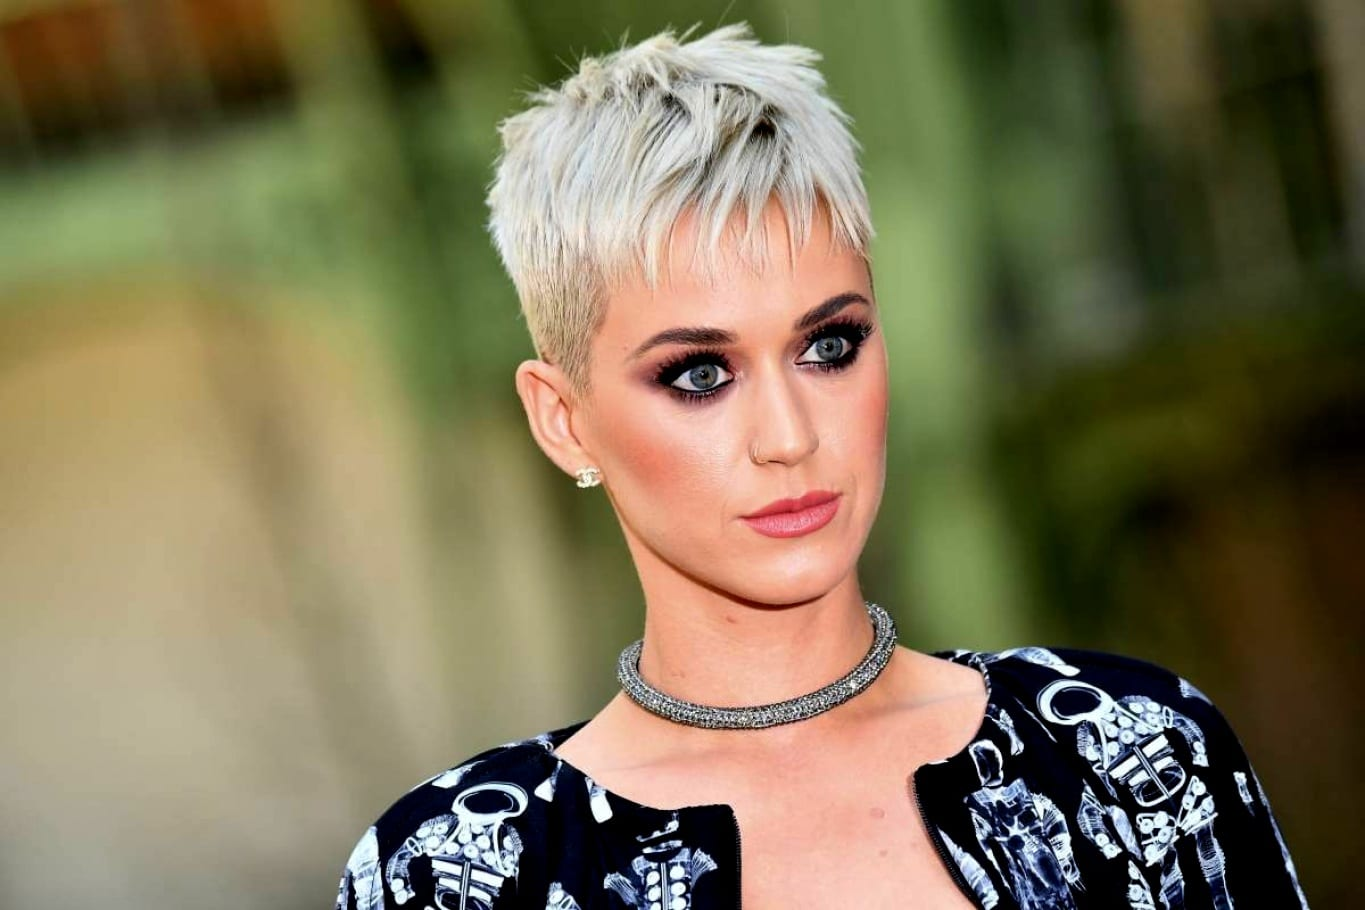 Kurzhaarfrisuren 2019 Damen Undercut Katy Perry